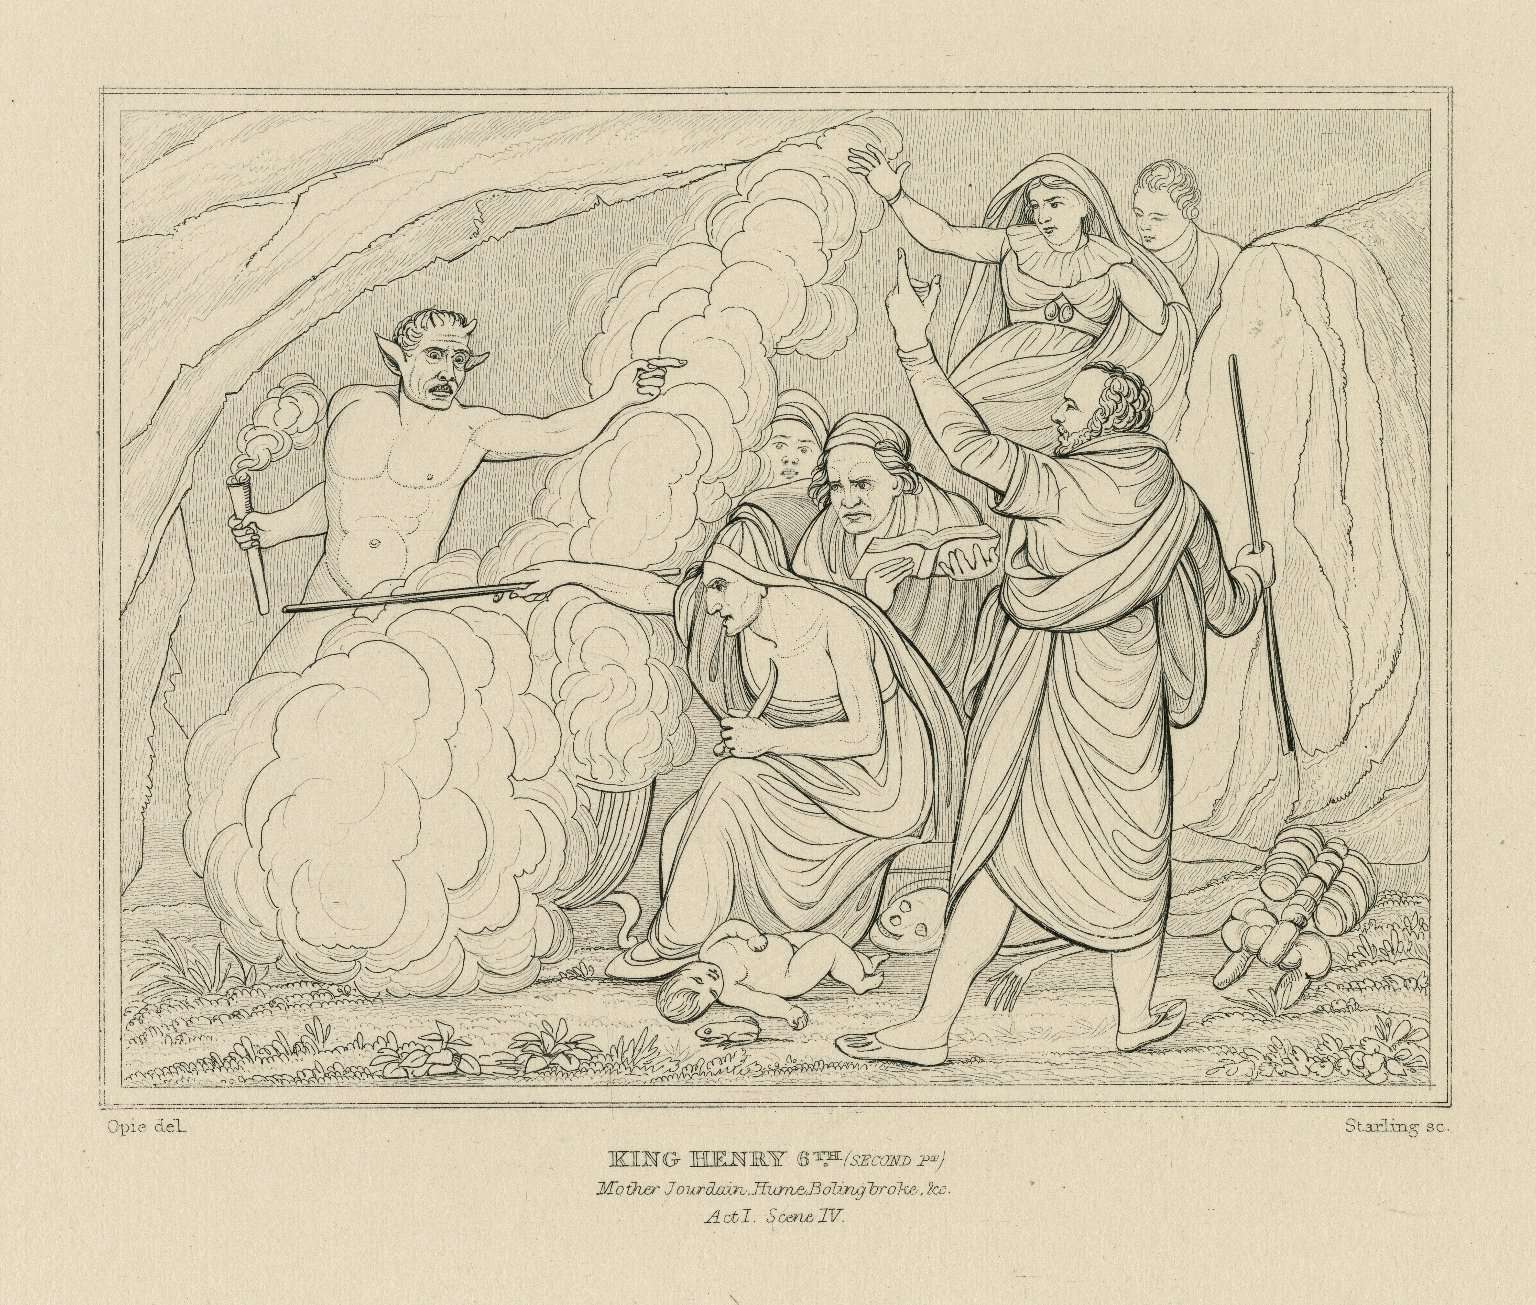 King Henry 6th (second pr), Mother Jourdain, Hume, Bolingbroke, &c, act I, scene IV [graphic] / Opie, del. ; Starling, sc.